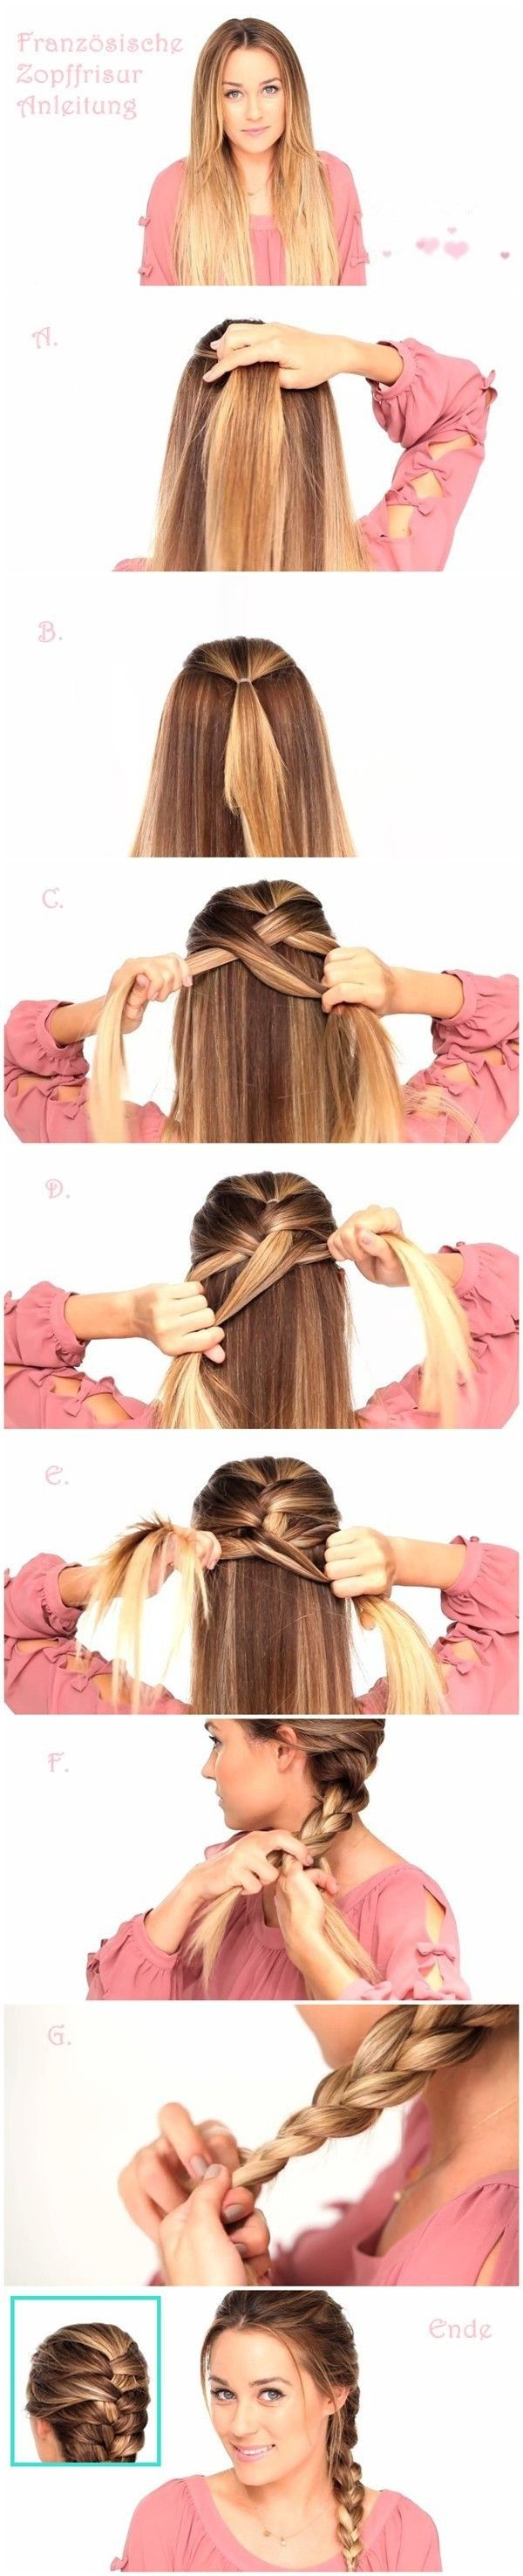 8 Party Hairstyle For Straight Hair Hair Styles Straight Hairstyles Braided Hairstyles Tutorials